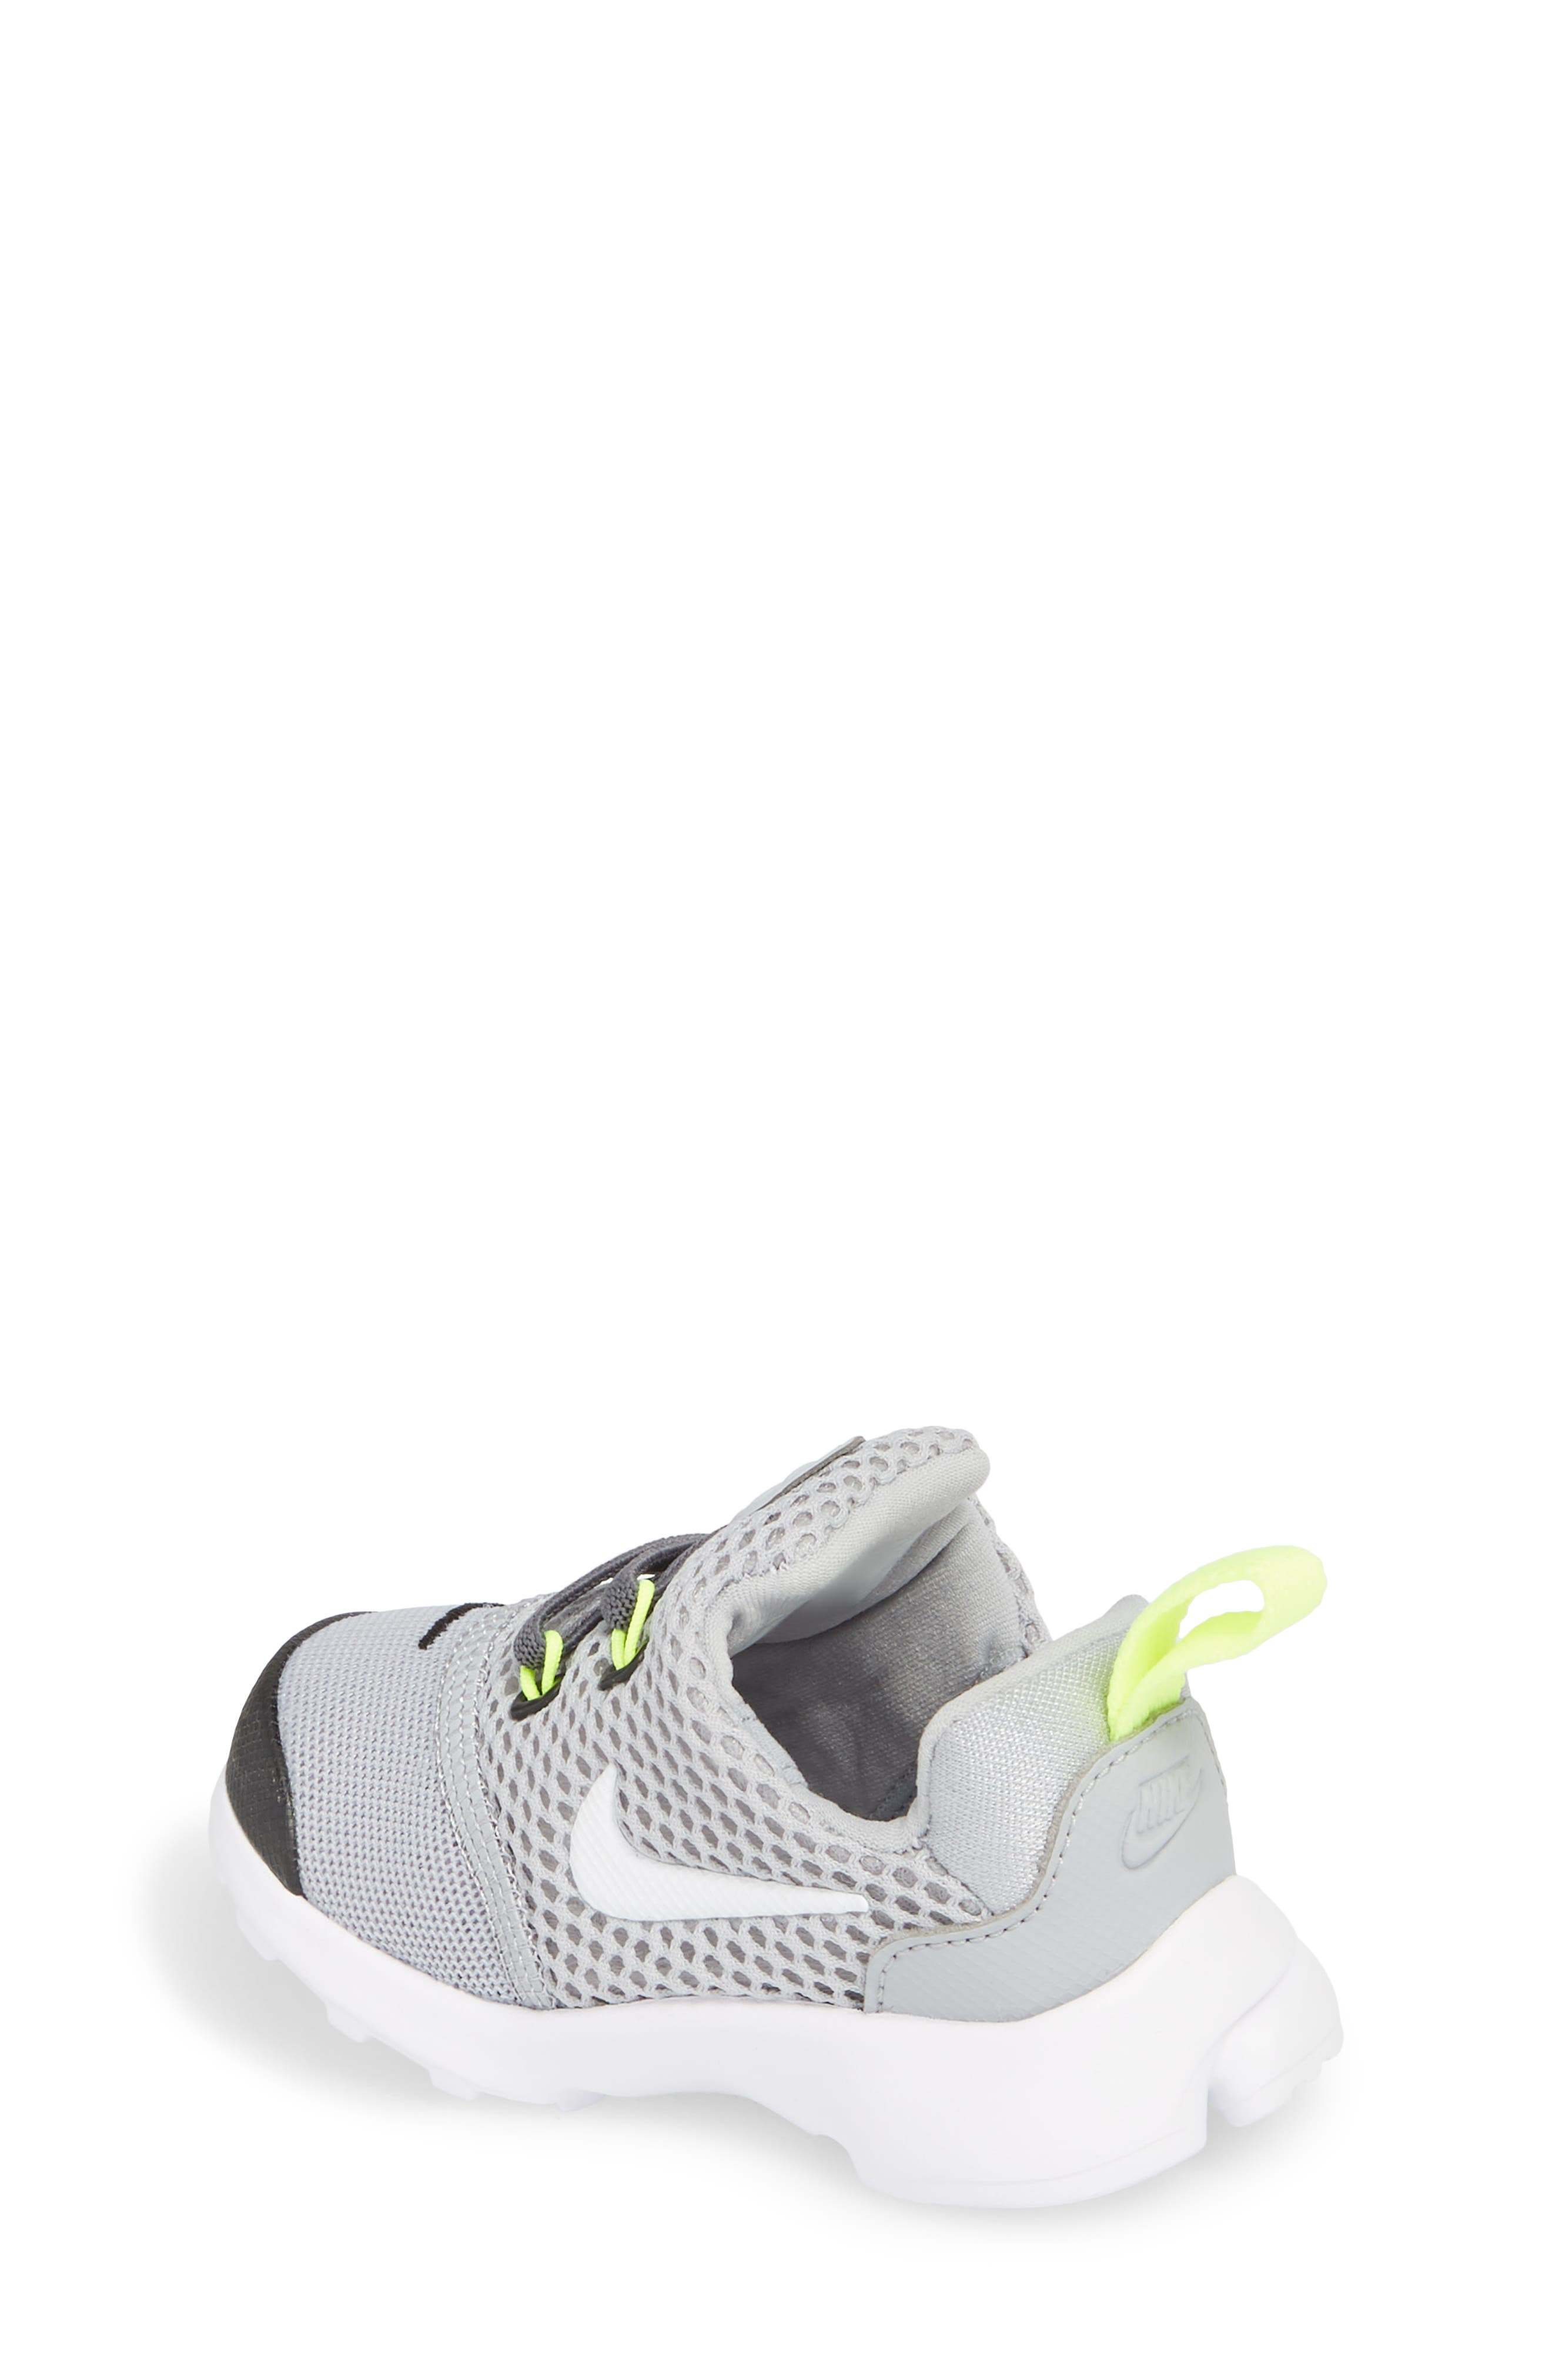 Presto Fly GS Sneaker,                             Alternate thumbnail 2, color,                             Grey/ White/ Black/ Volt